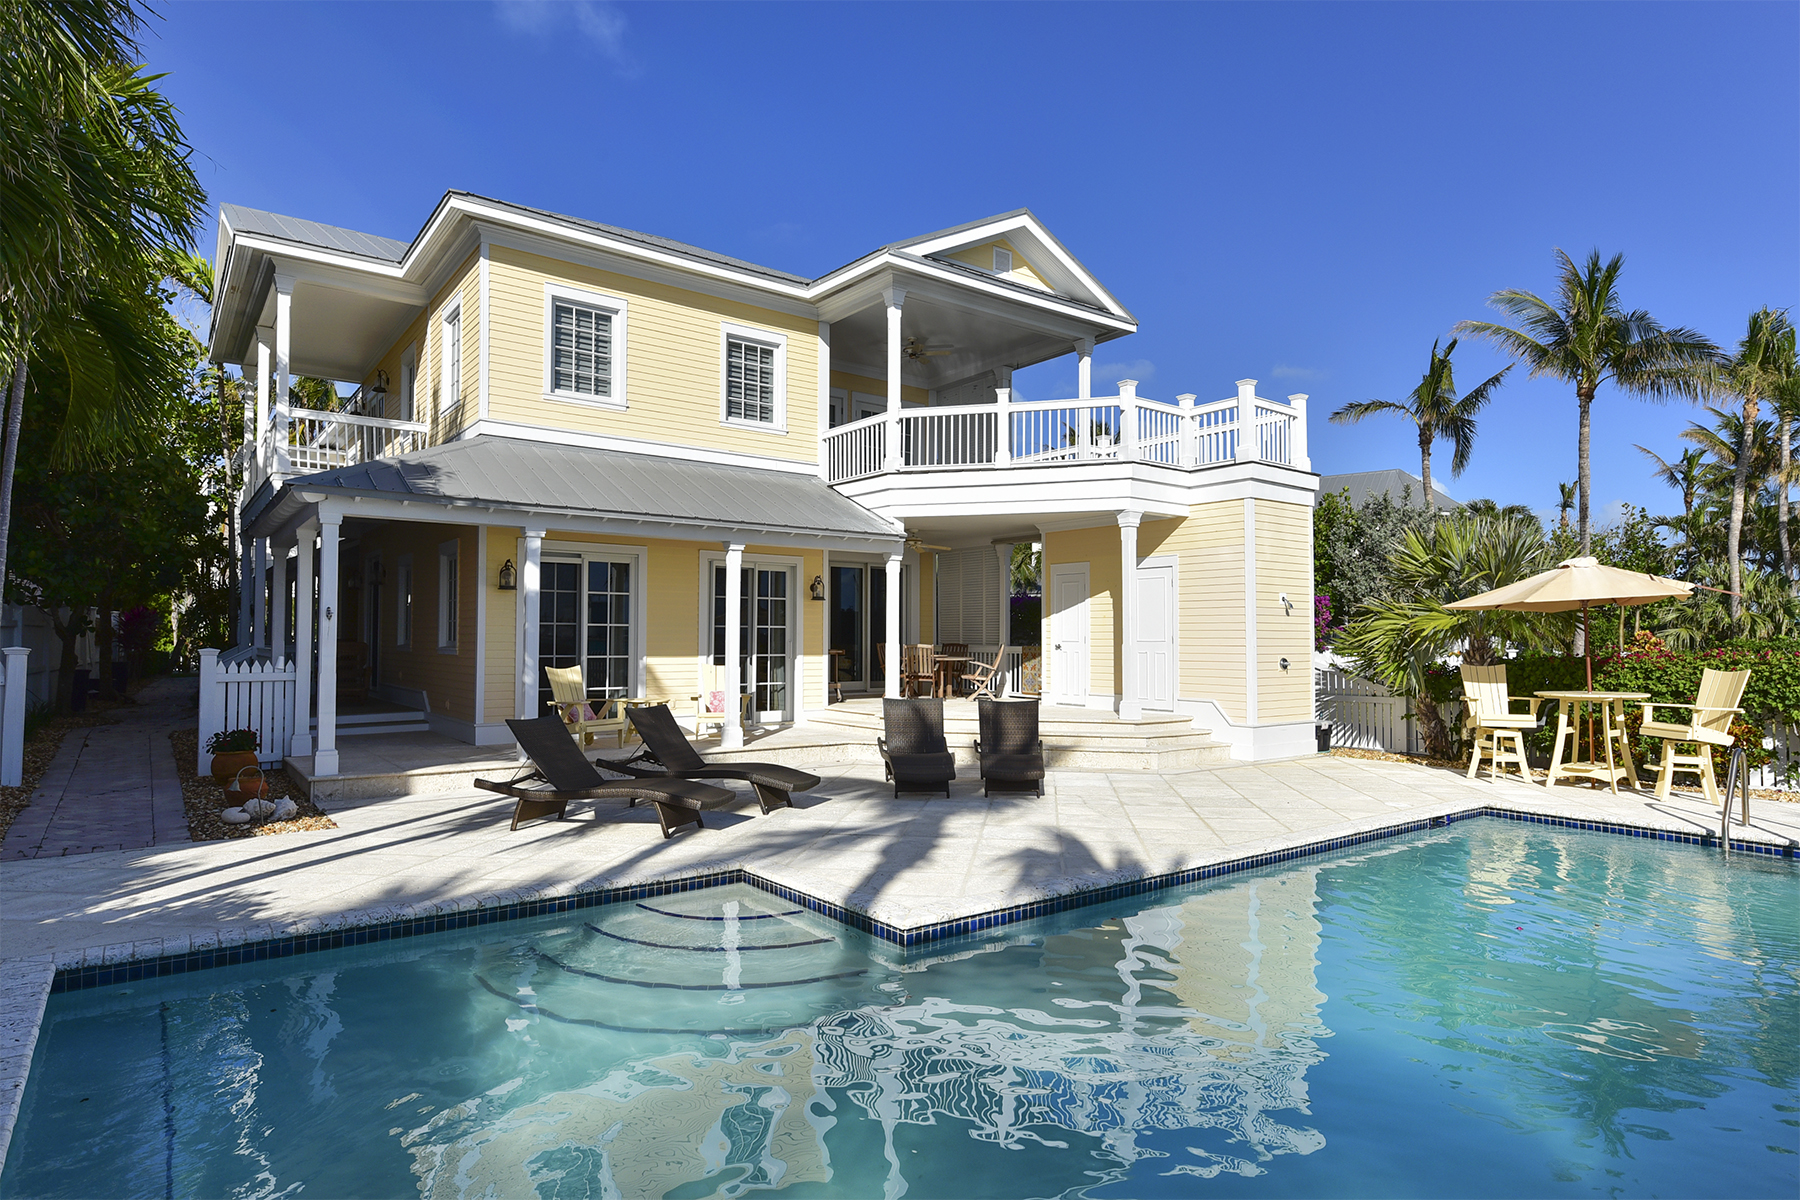 Casa Unifamiliar por un Venta en Oceanfront Home on Sunset Key 23 Sunset Key Drive Key West, Florida 33040 Estados Unidos